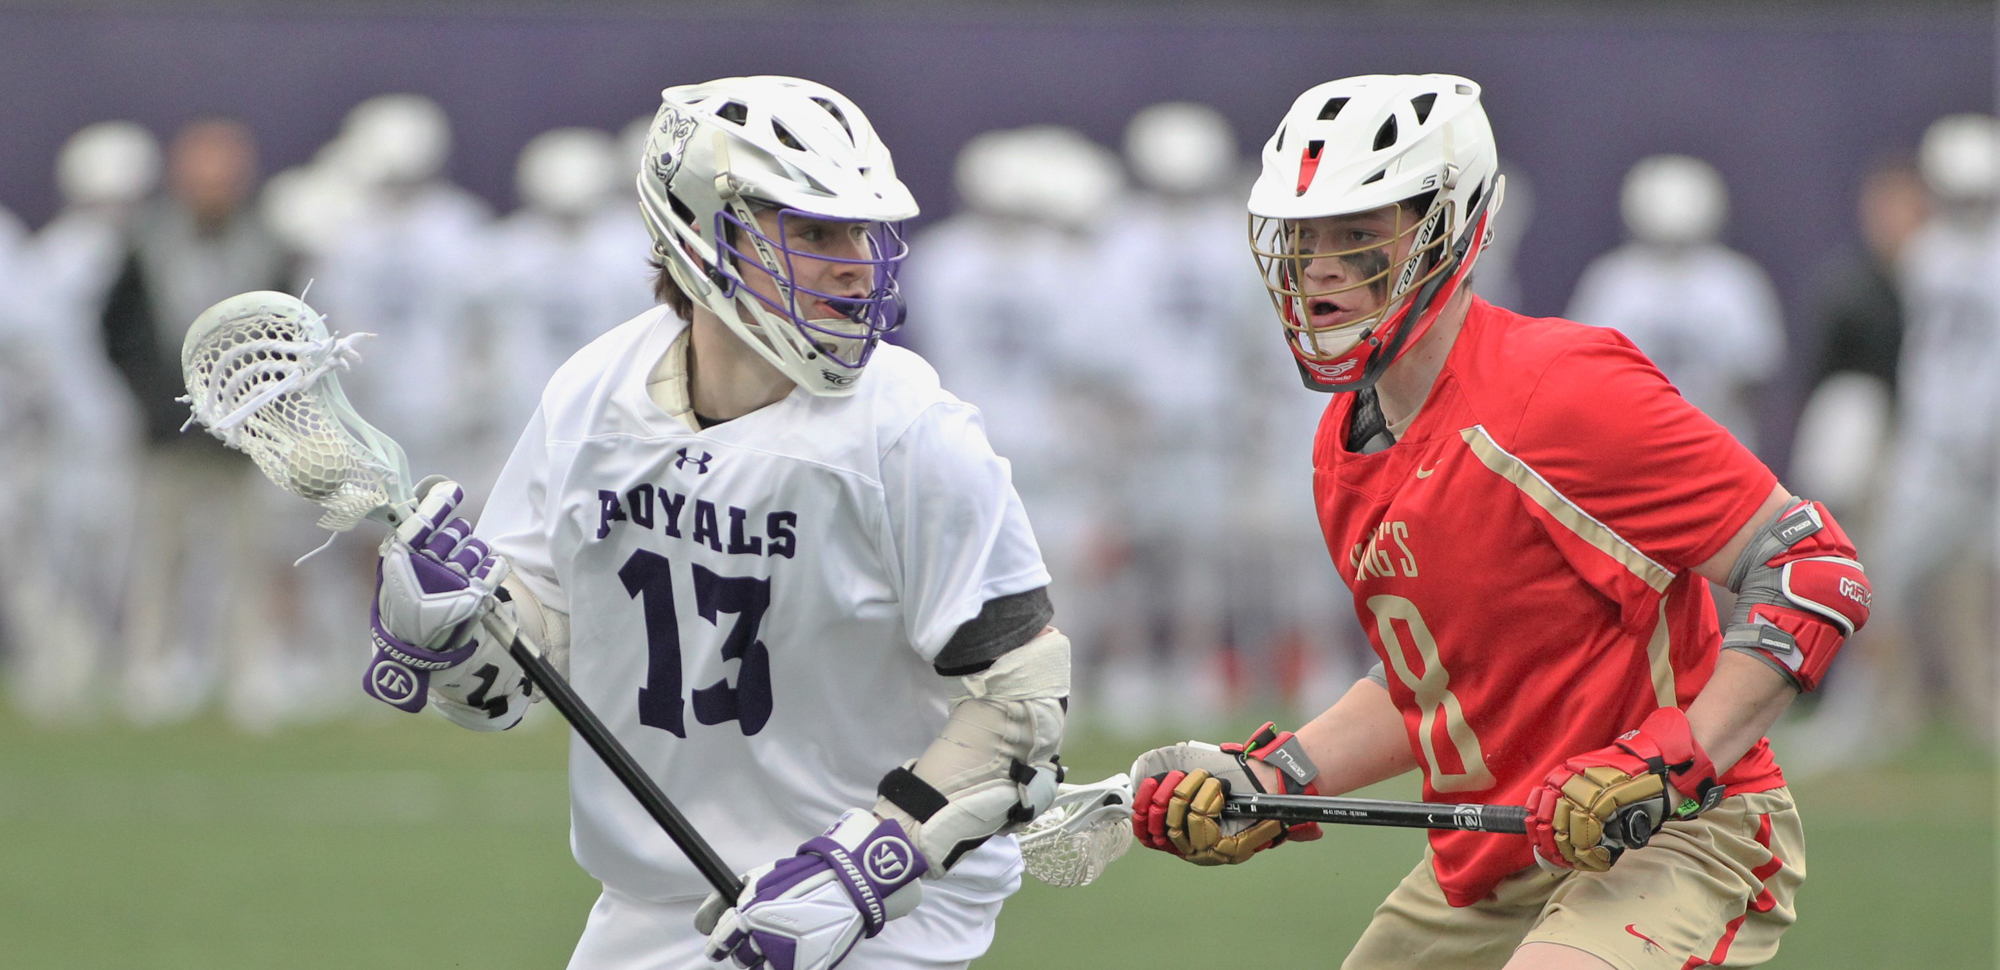 Thomas Nagle was one of 14 different Royals to register at least one point in Scranton's lopsided win over Goucher on Saturday. © Photo by Timothy R. Dougherty / doubleeaglephotography.com